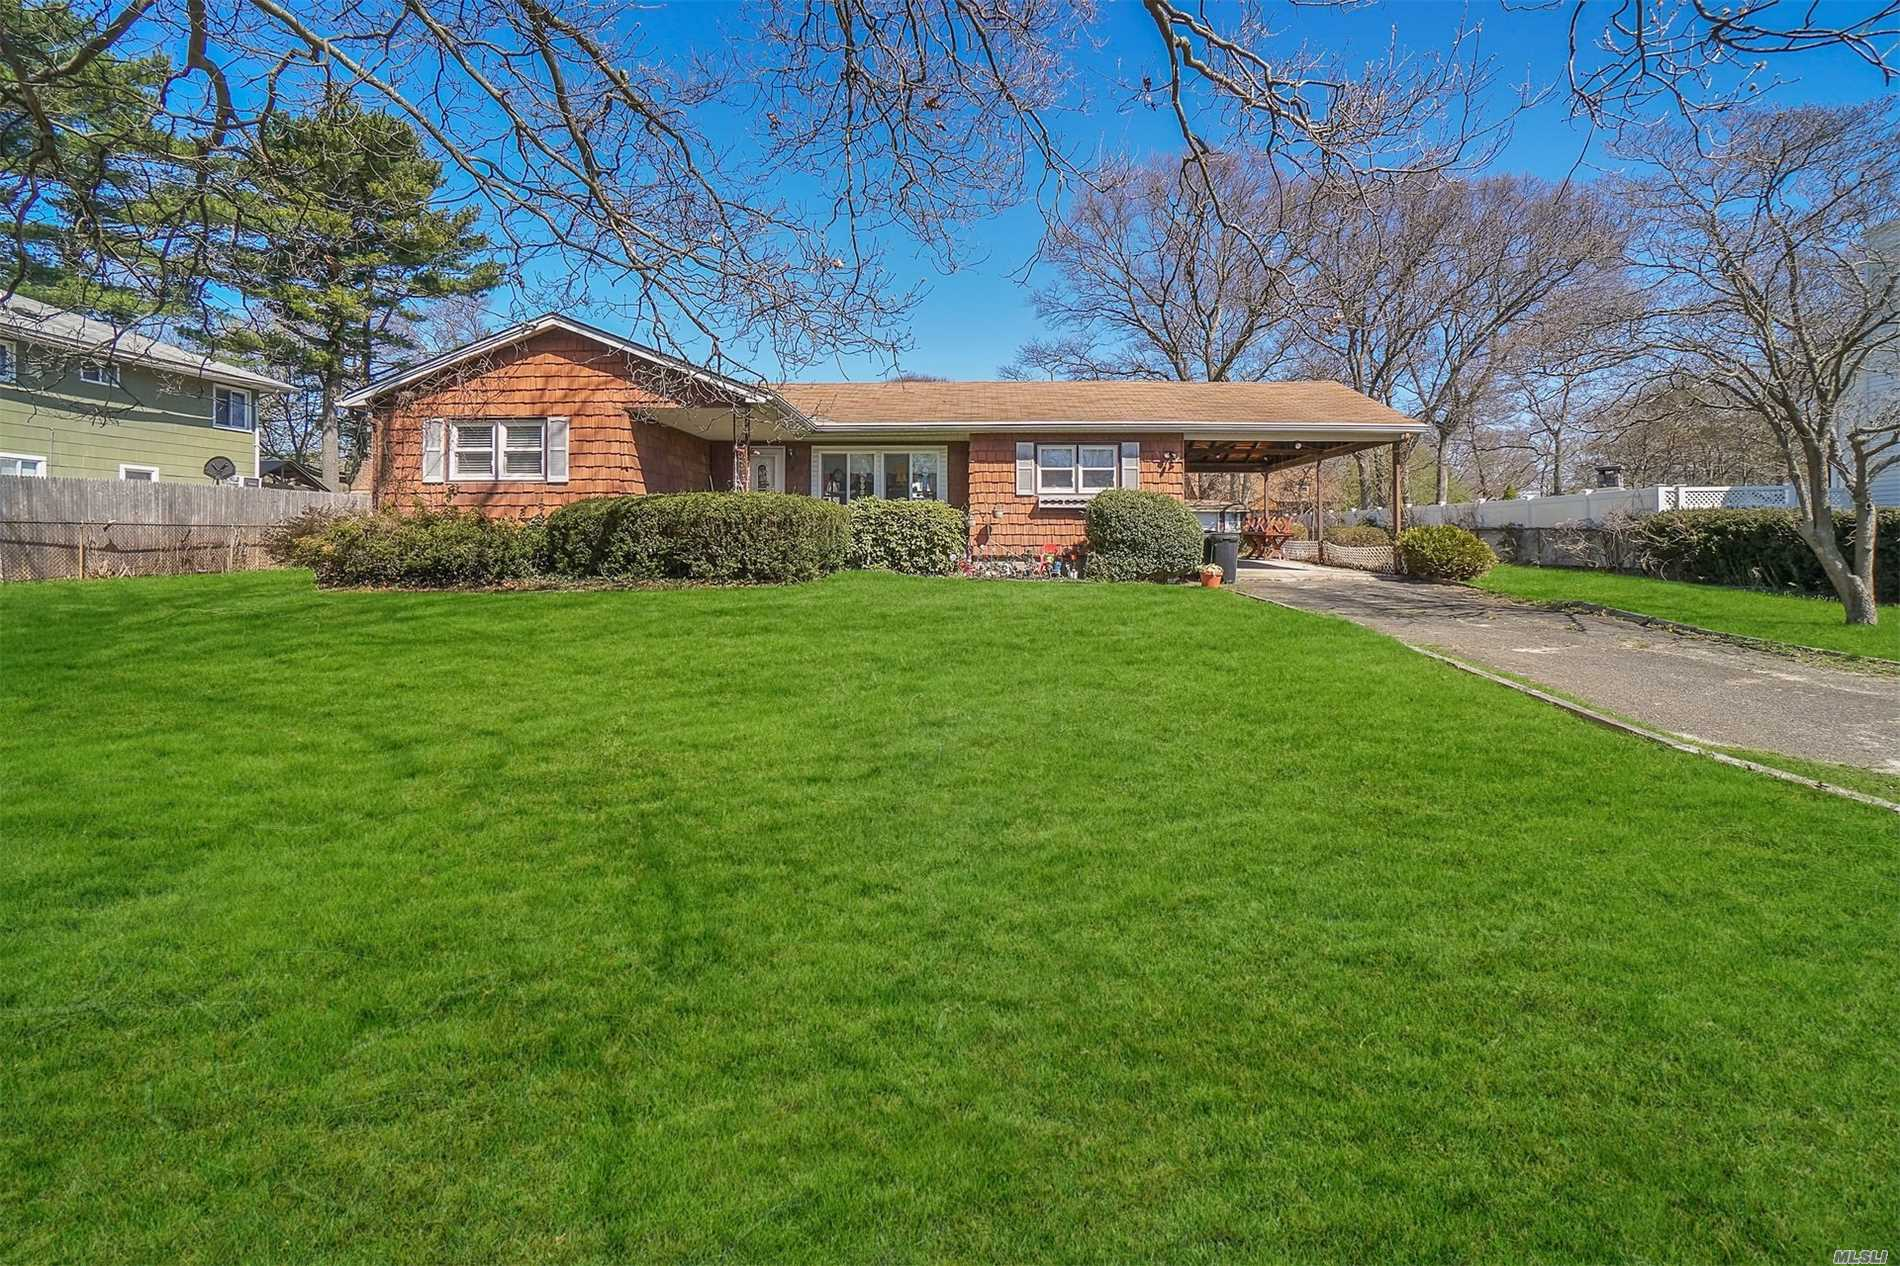 Bank Approved Short Sale! Come See This Lovely 3 Bedroom Ranch In Sachem Schools. Large Yard With Massive Basement. Central Air and New Chimney.